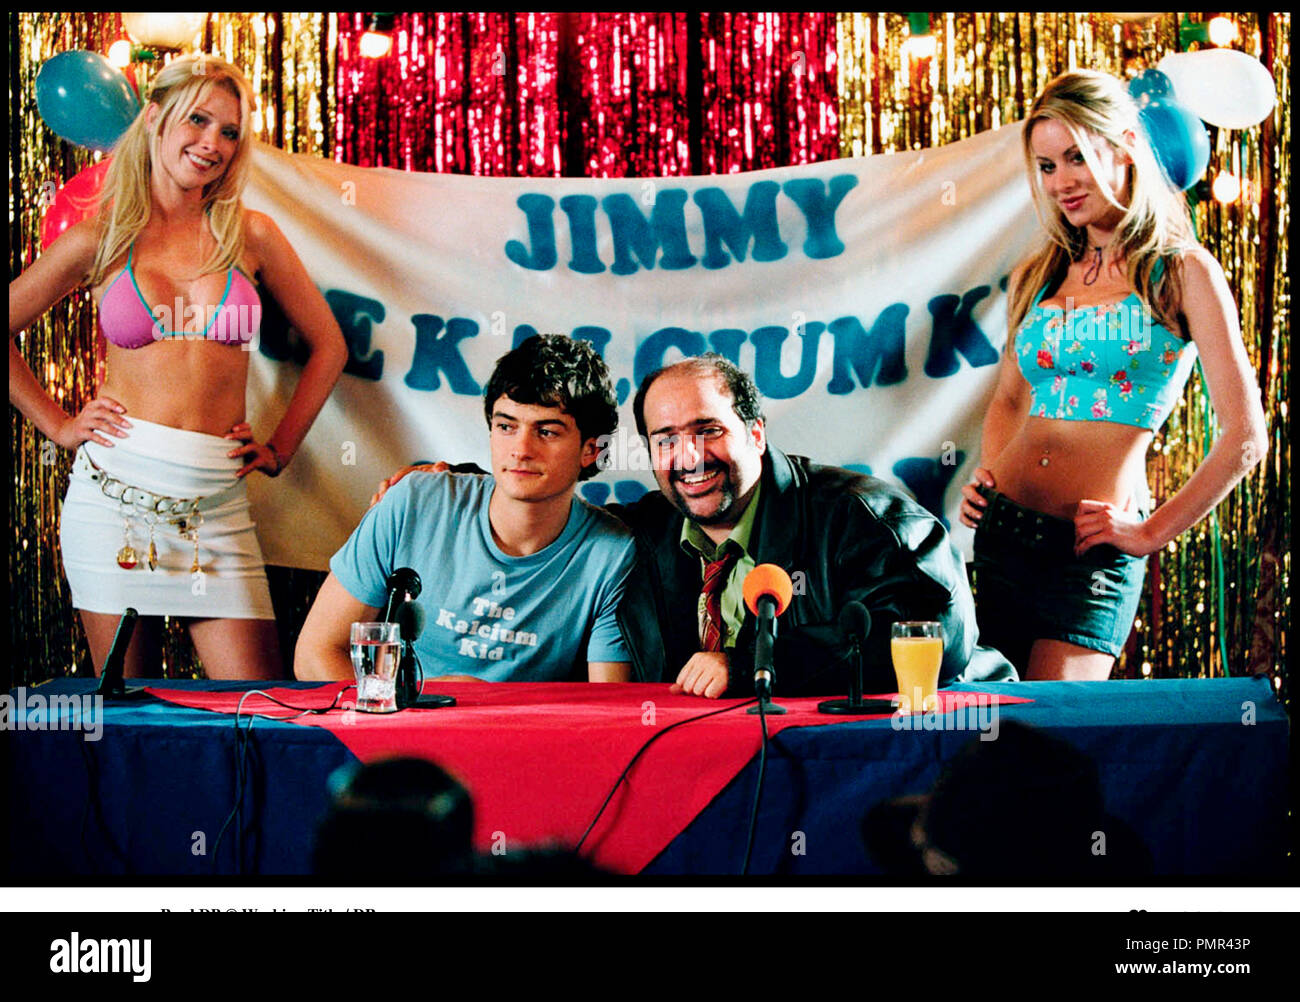 Prod DB © Working Title / DR THE CALCIUM KID (THE CALCIUM KID) de Alex De Rakoff 2004 GB avec Josephine Teale, Orlando Bloom, Omid Djalili et Maddy Ford - Stock Image